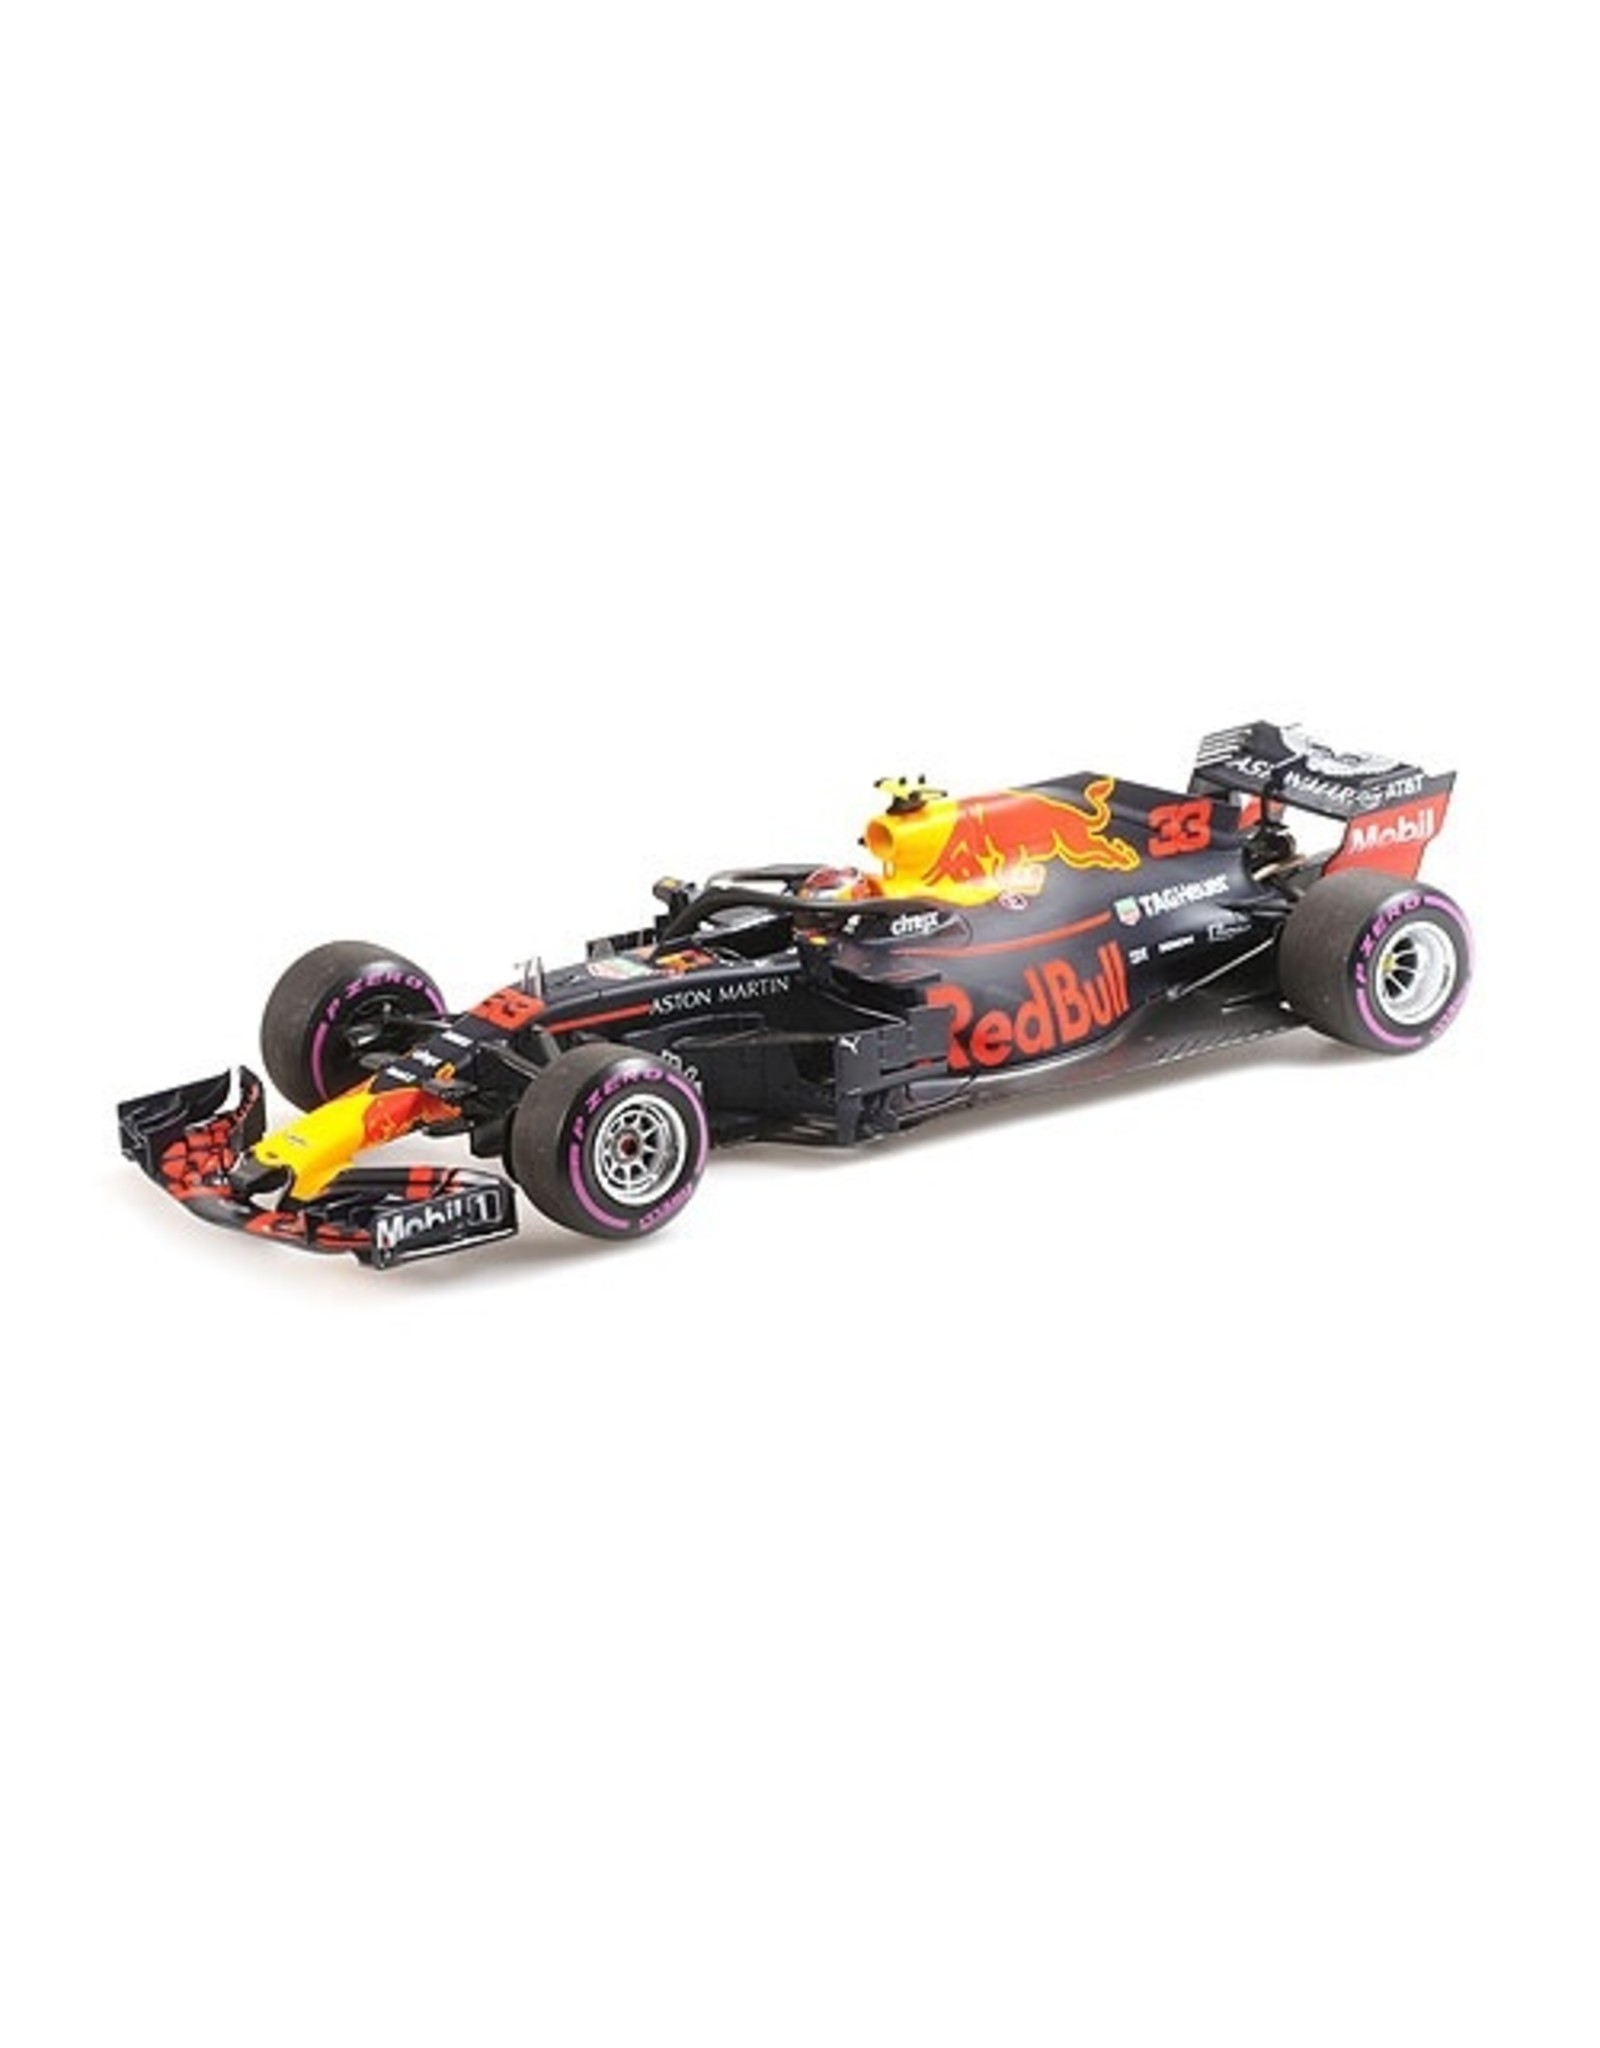 Formule 1 Aston Martin Red Bull Racing TAG Heuer RB14 #33 Winner Mexican GP 2018 - 1:18 - Minichamps